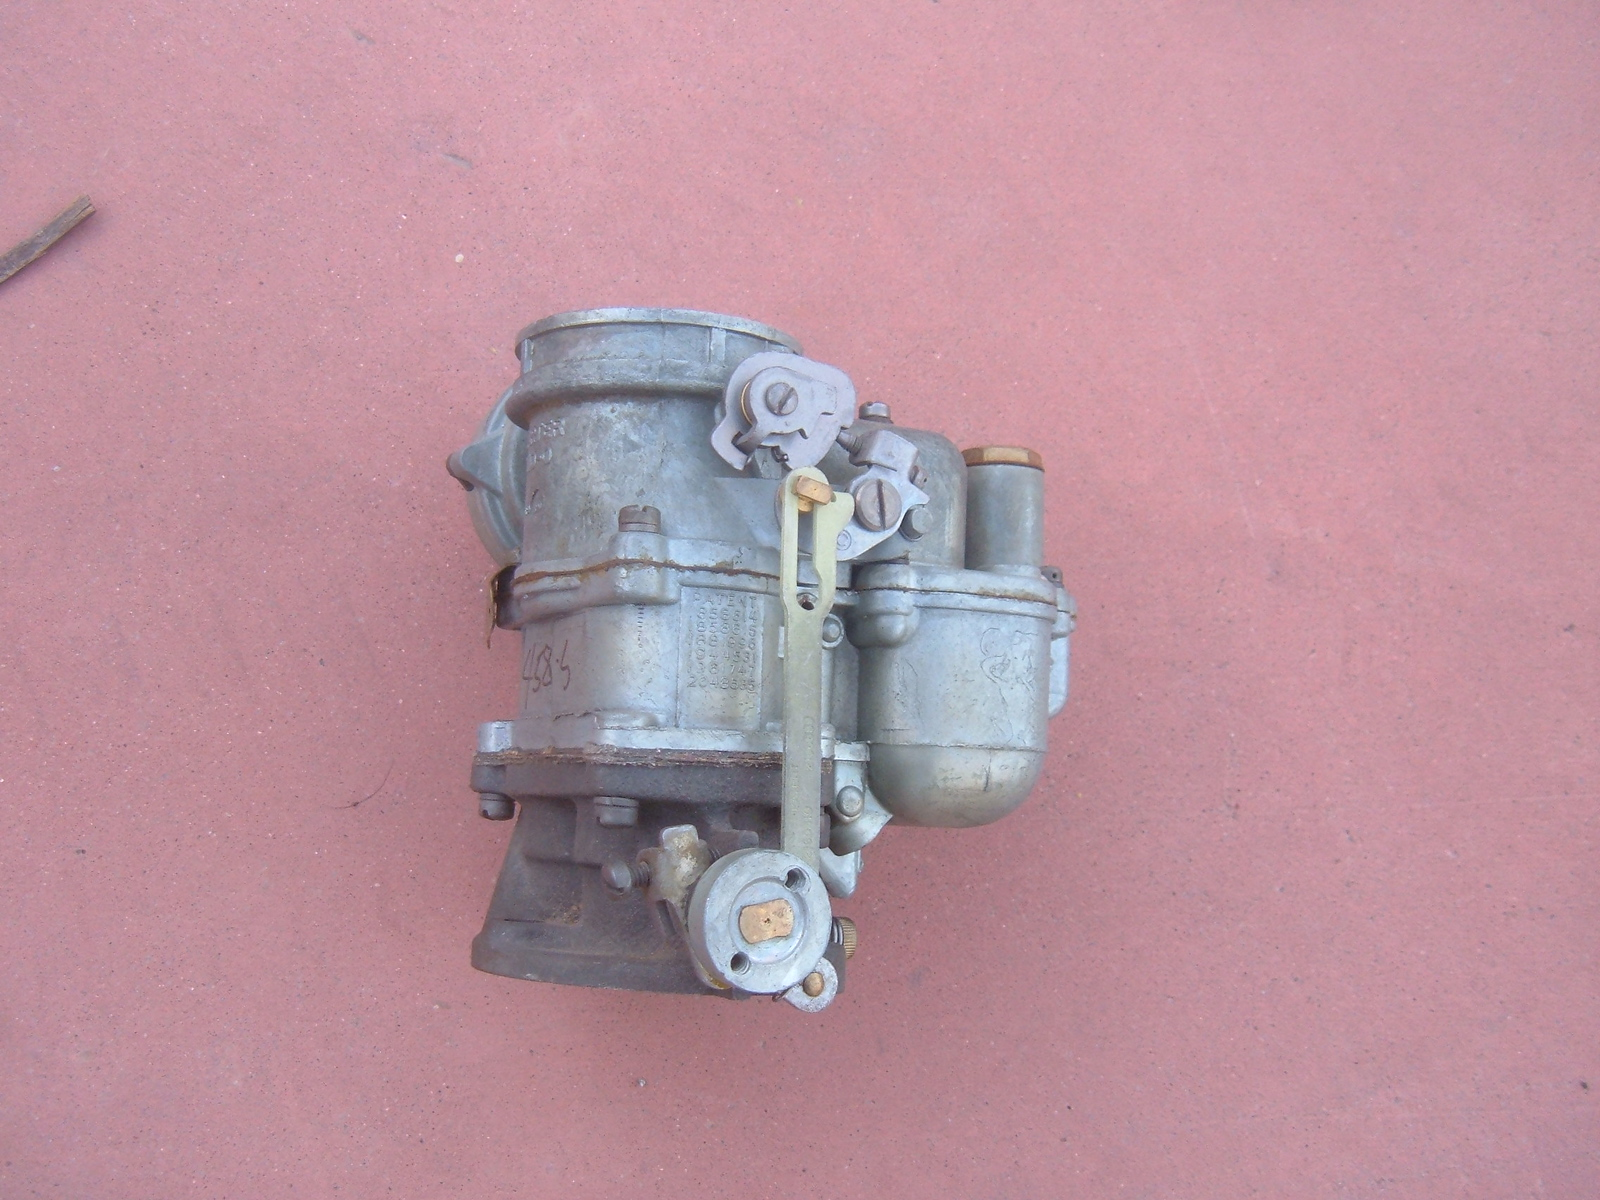 View Product1940 nash lafayette Carter rebuilt 2 barrel Carburetor part number 458-s (z 458)